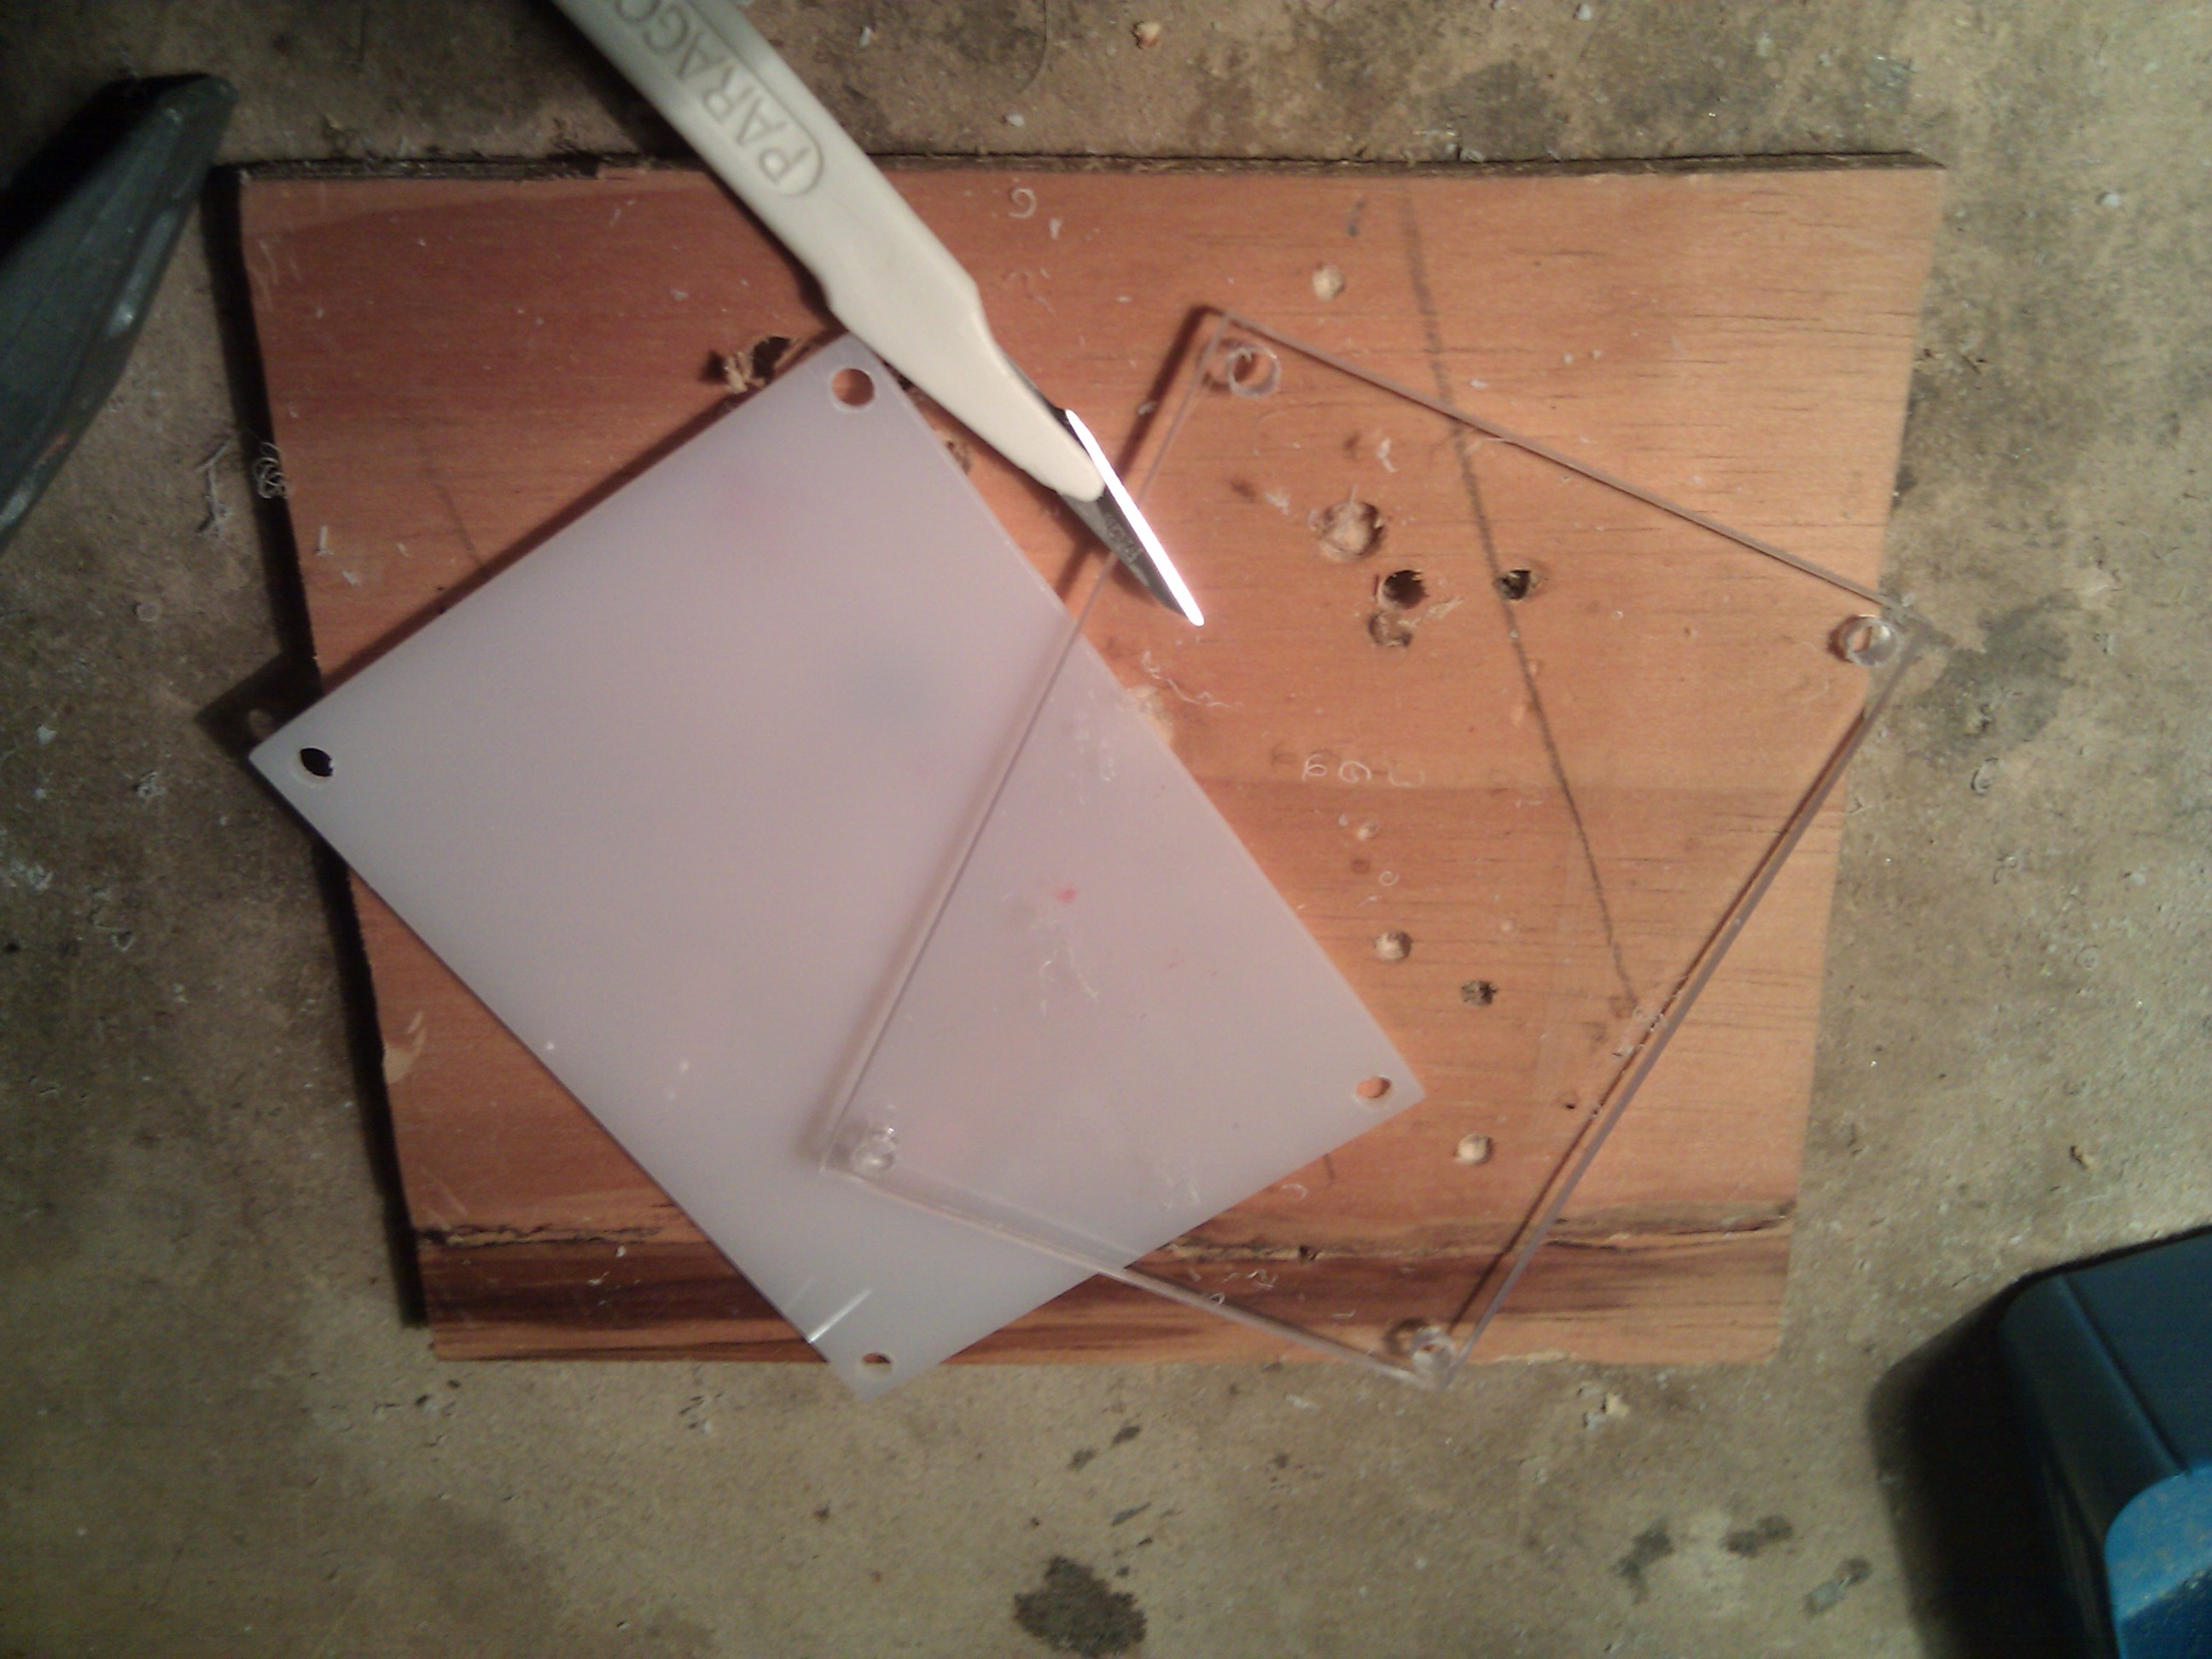 PVCCase: pvc pieces and the knife